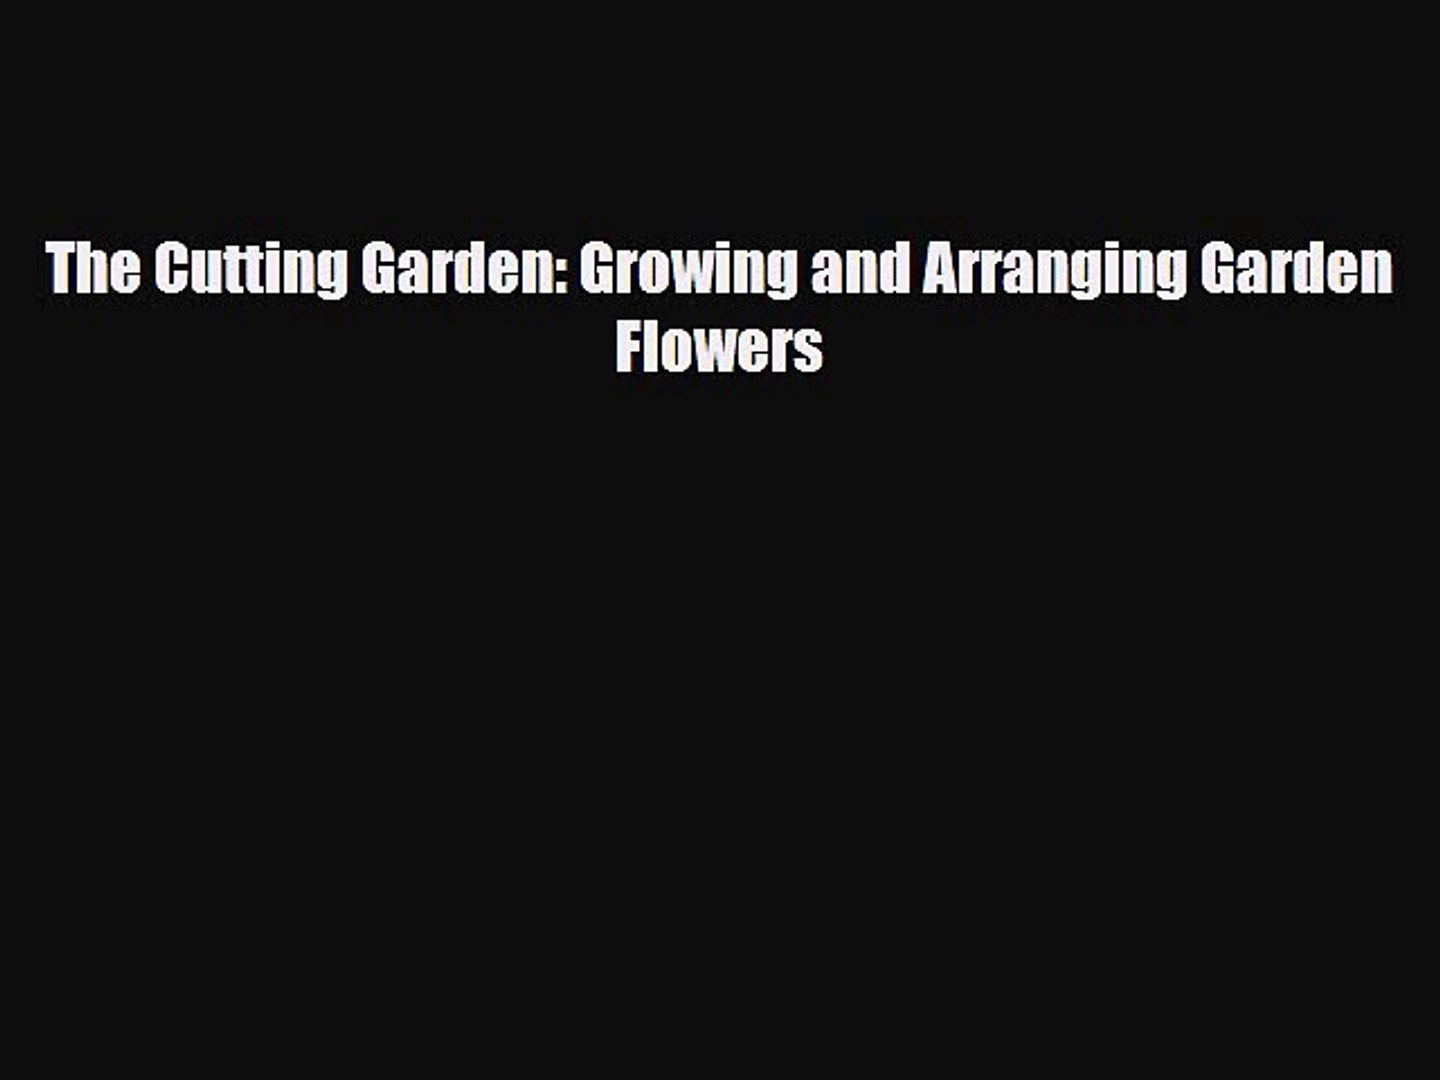 [PDF] The Cutting Garden: Growing and Arranging Garden Flowers Download Online